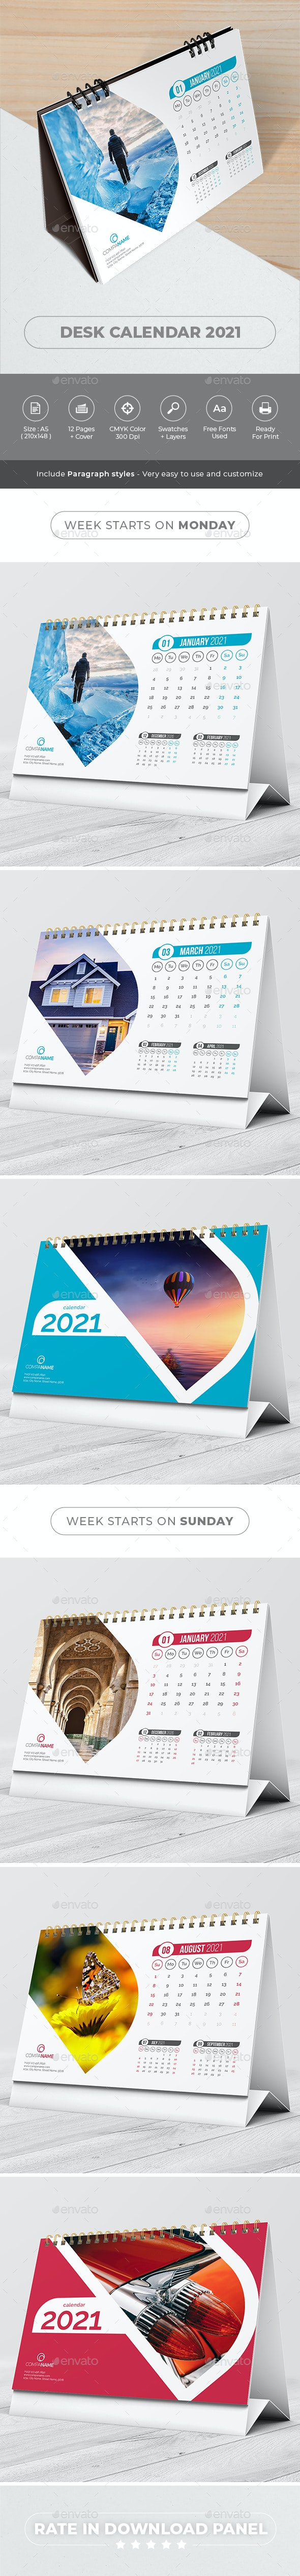 Desk Calendar 2021 - Calendars Stationery